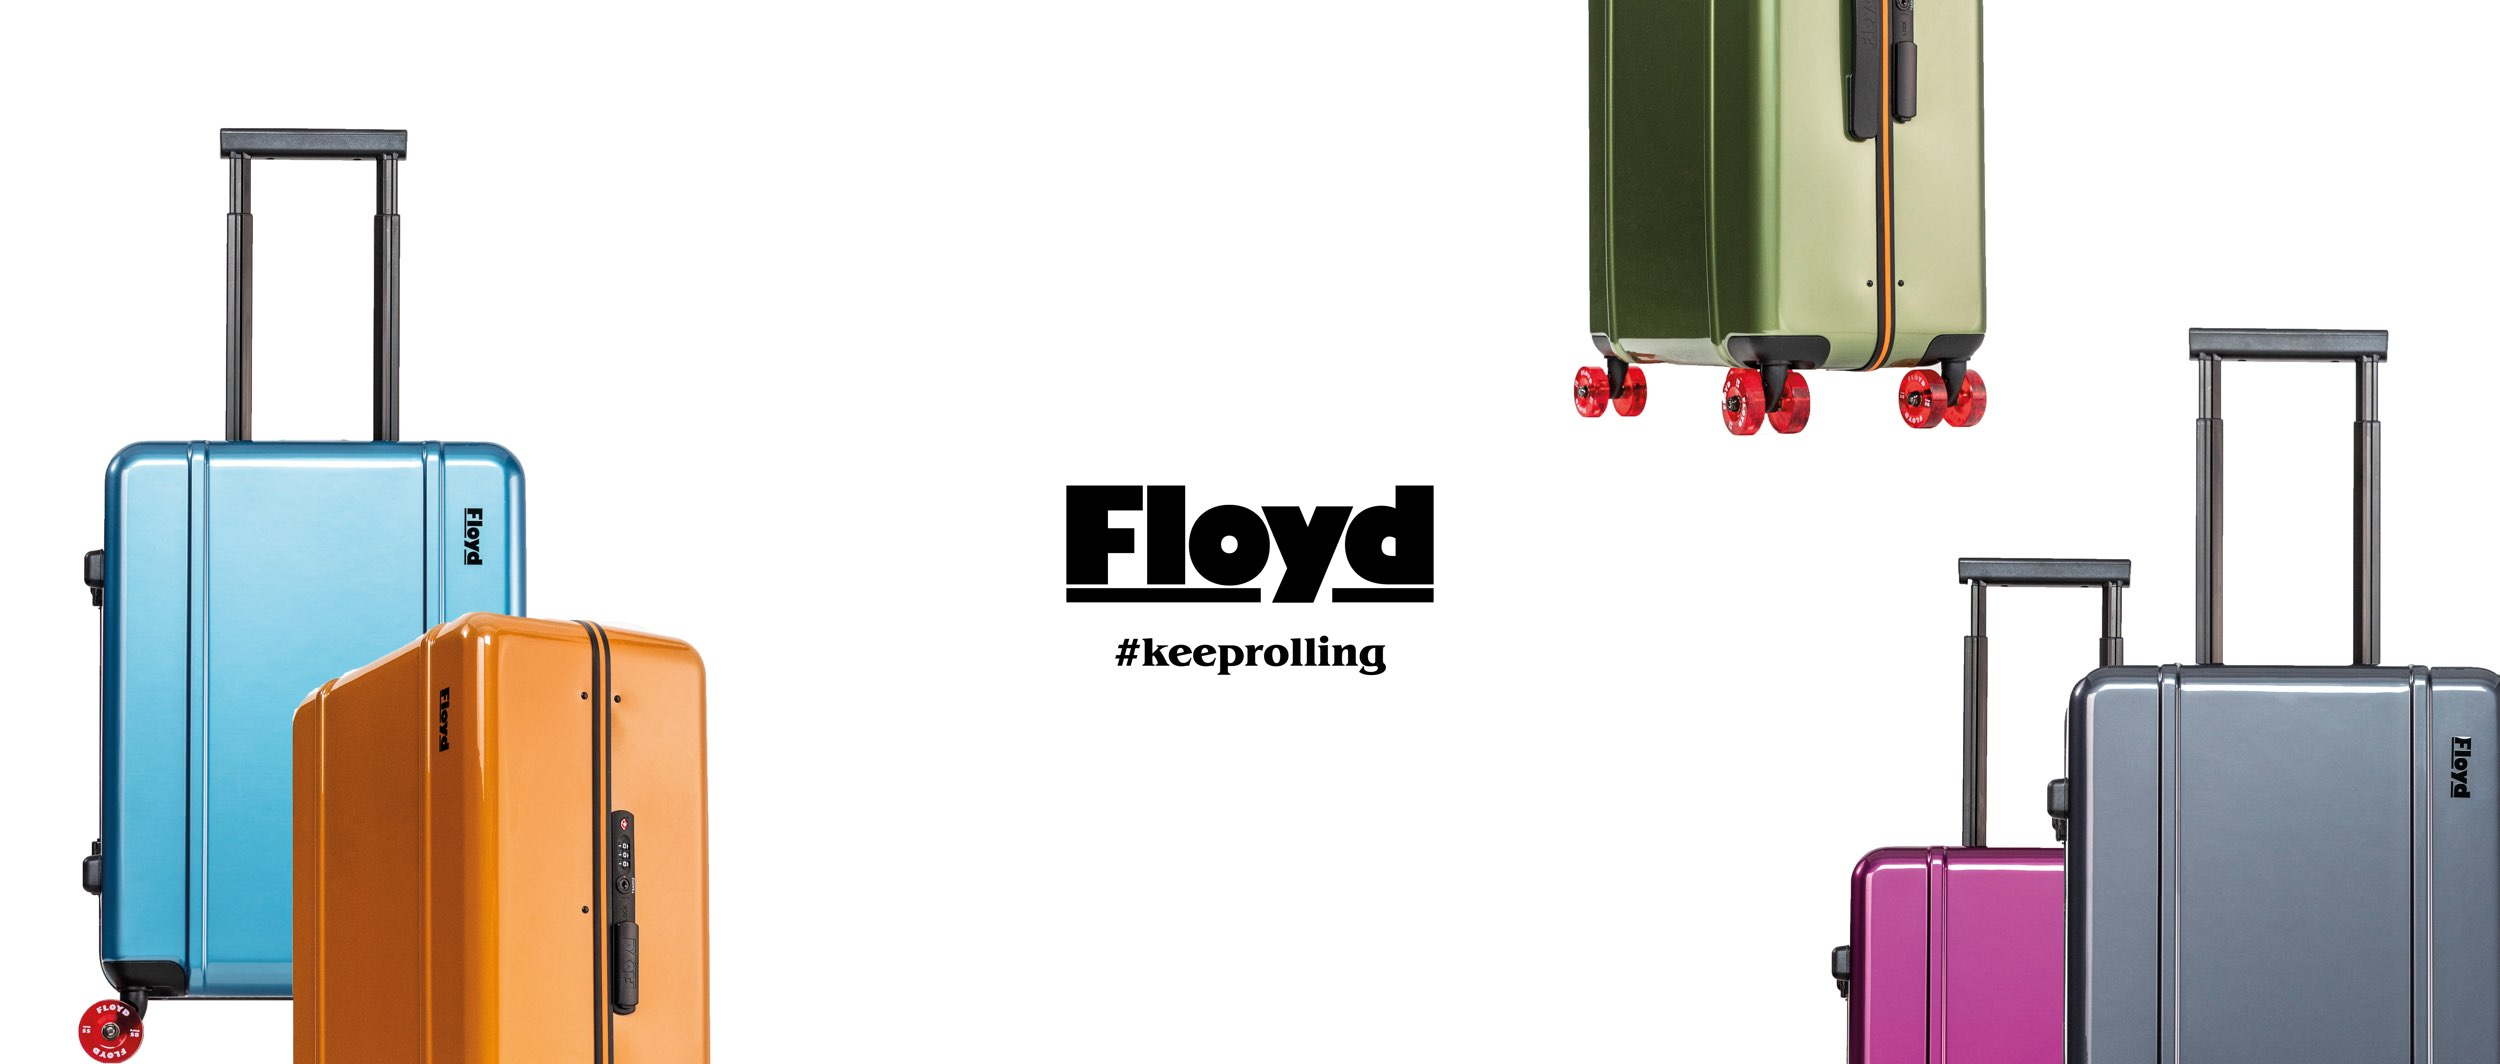 Floyd Referenz Content Performance Marketing Kampagnenplanung Beratung